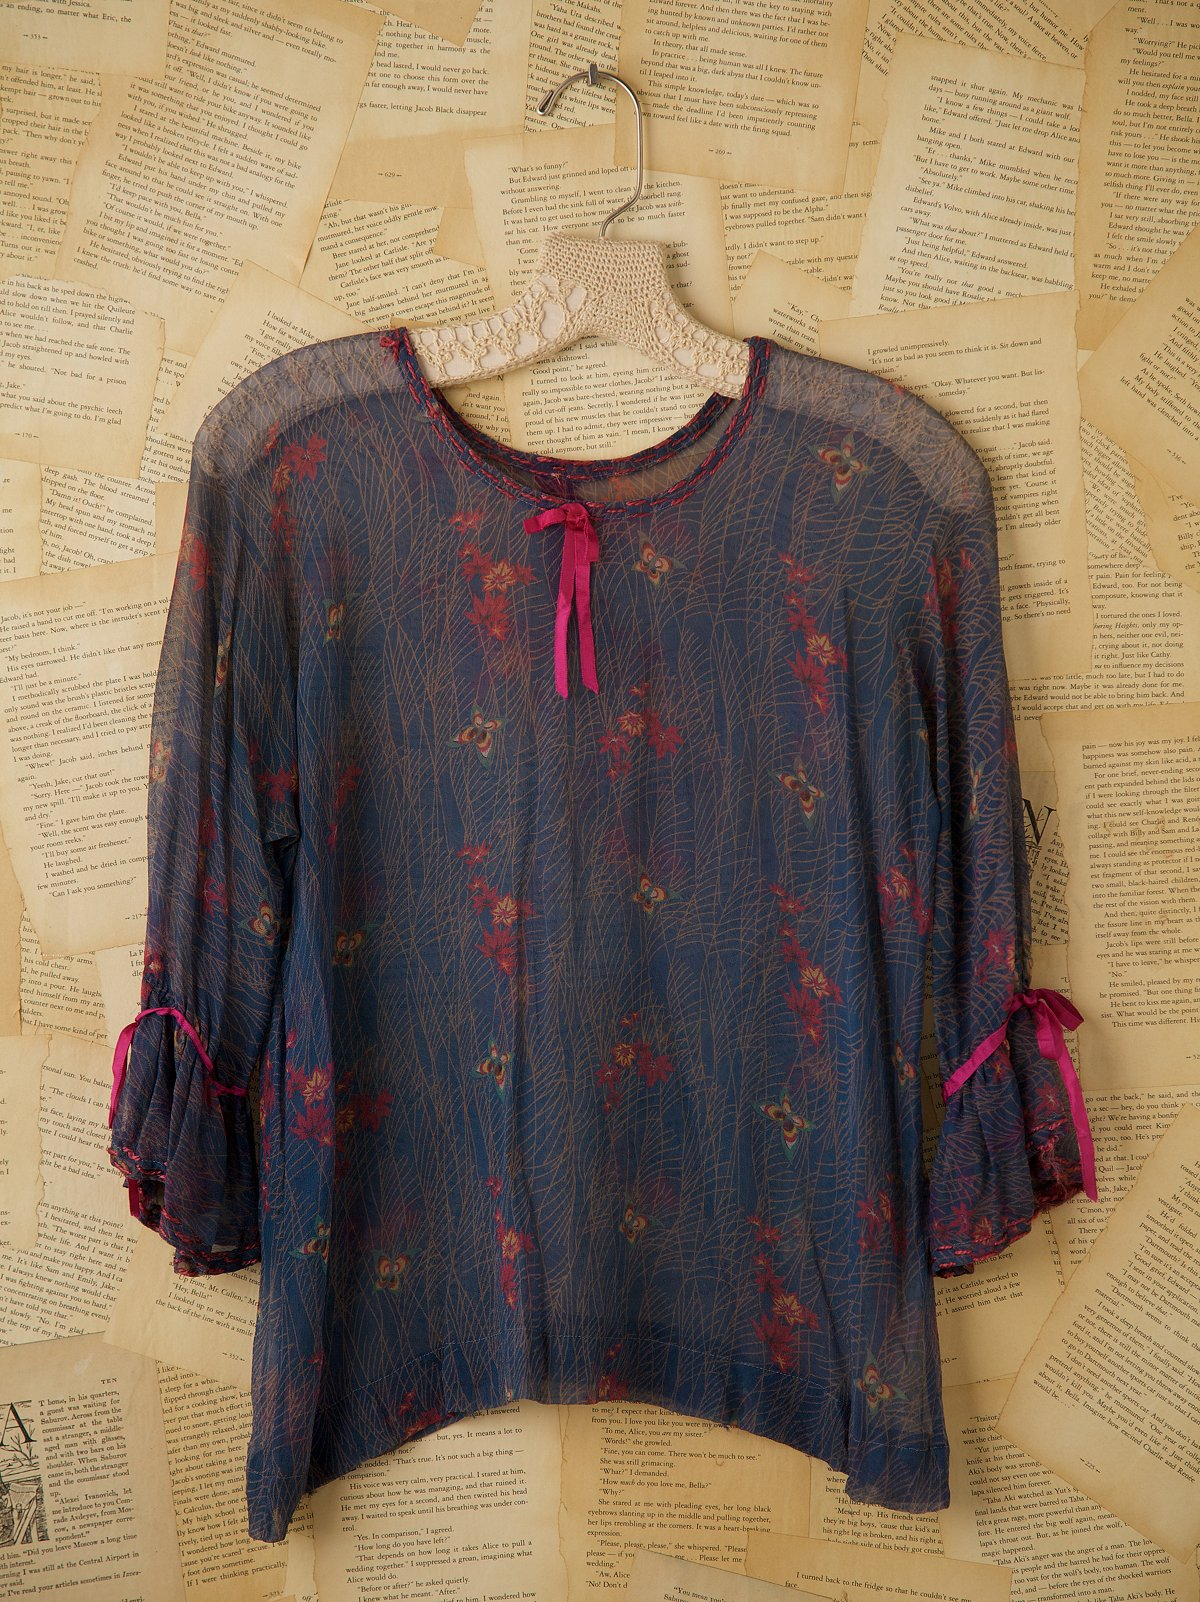 Vintage 1920s Silk Chiffon Floral Printed Blouse